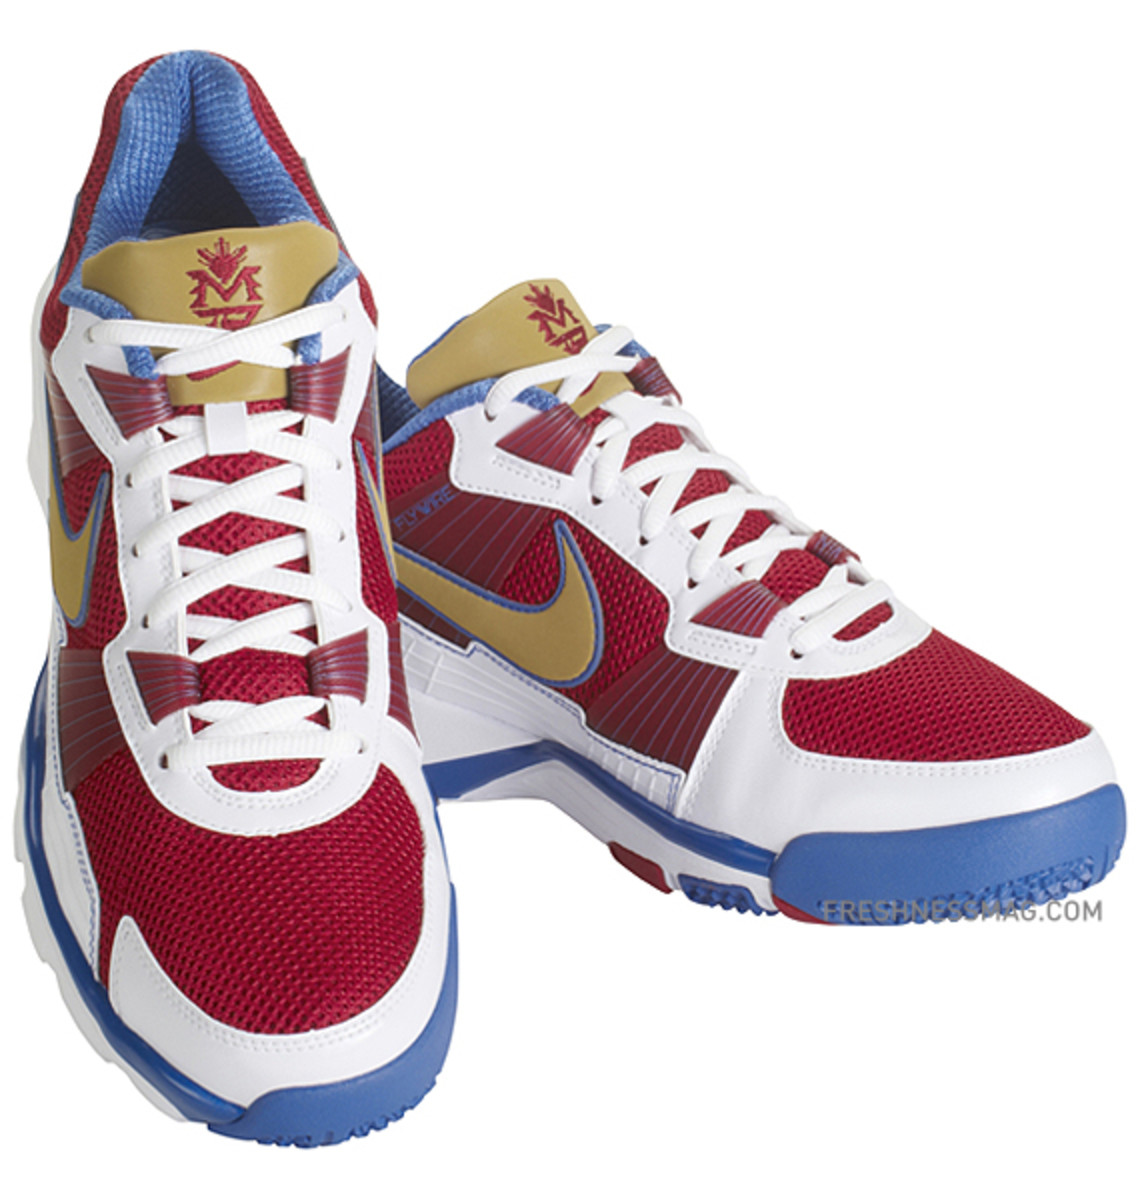 manny-pacquiao-nike-trainer-sc-2010-philippines-03